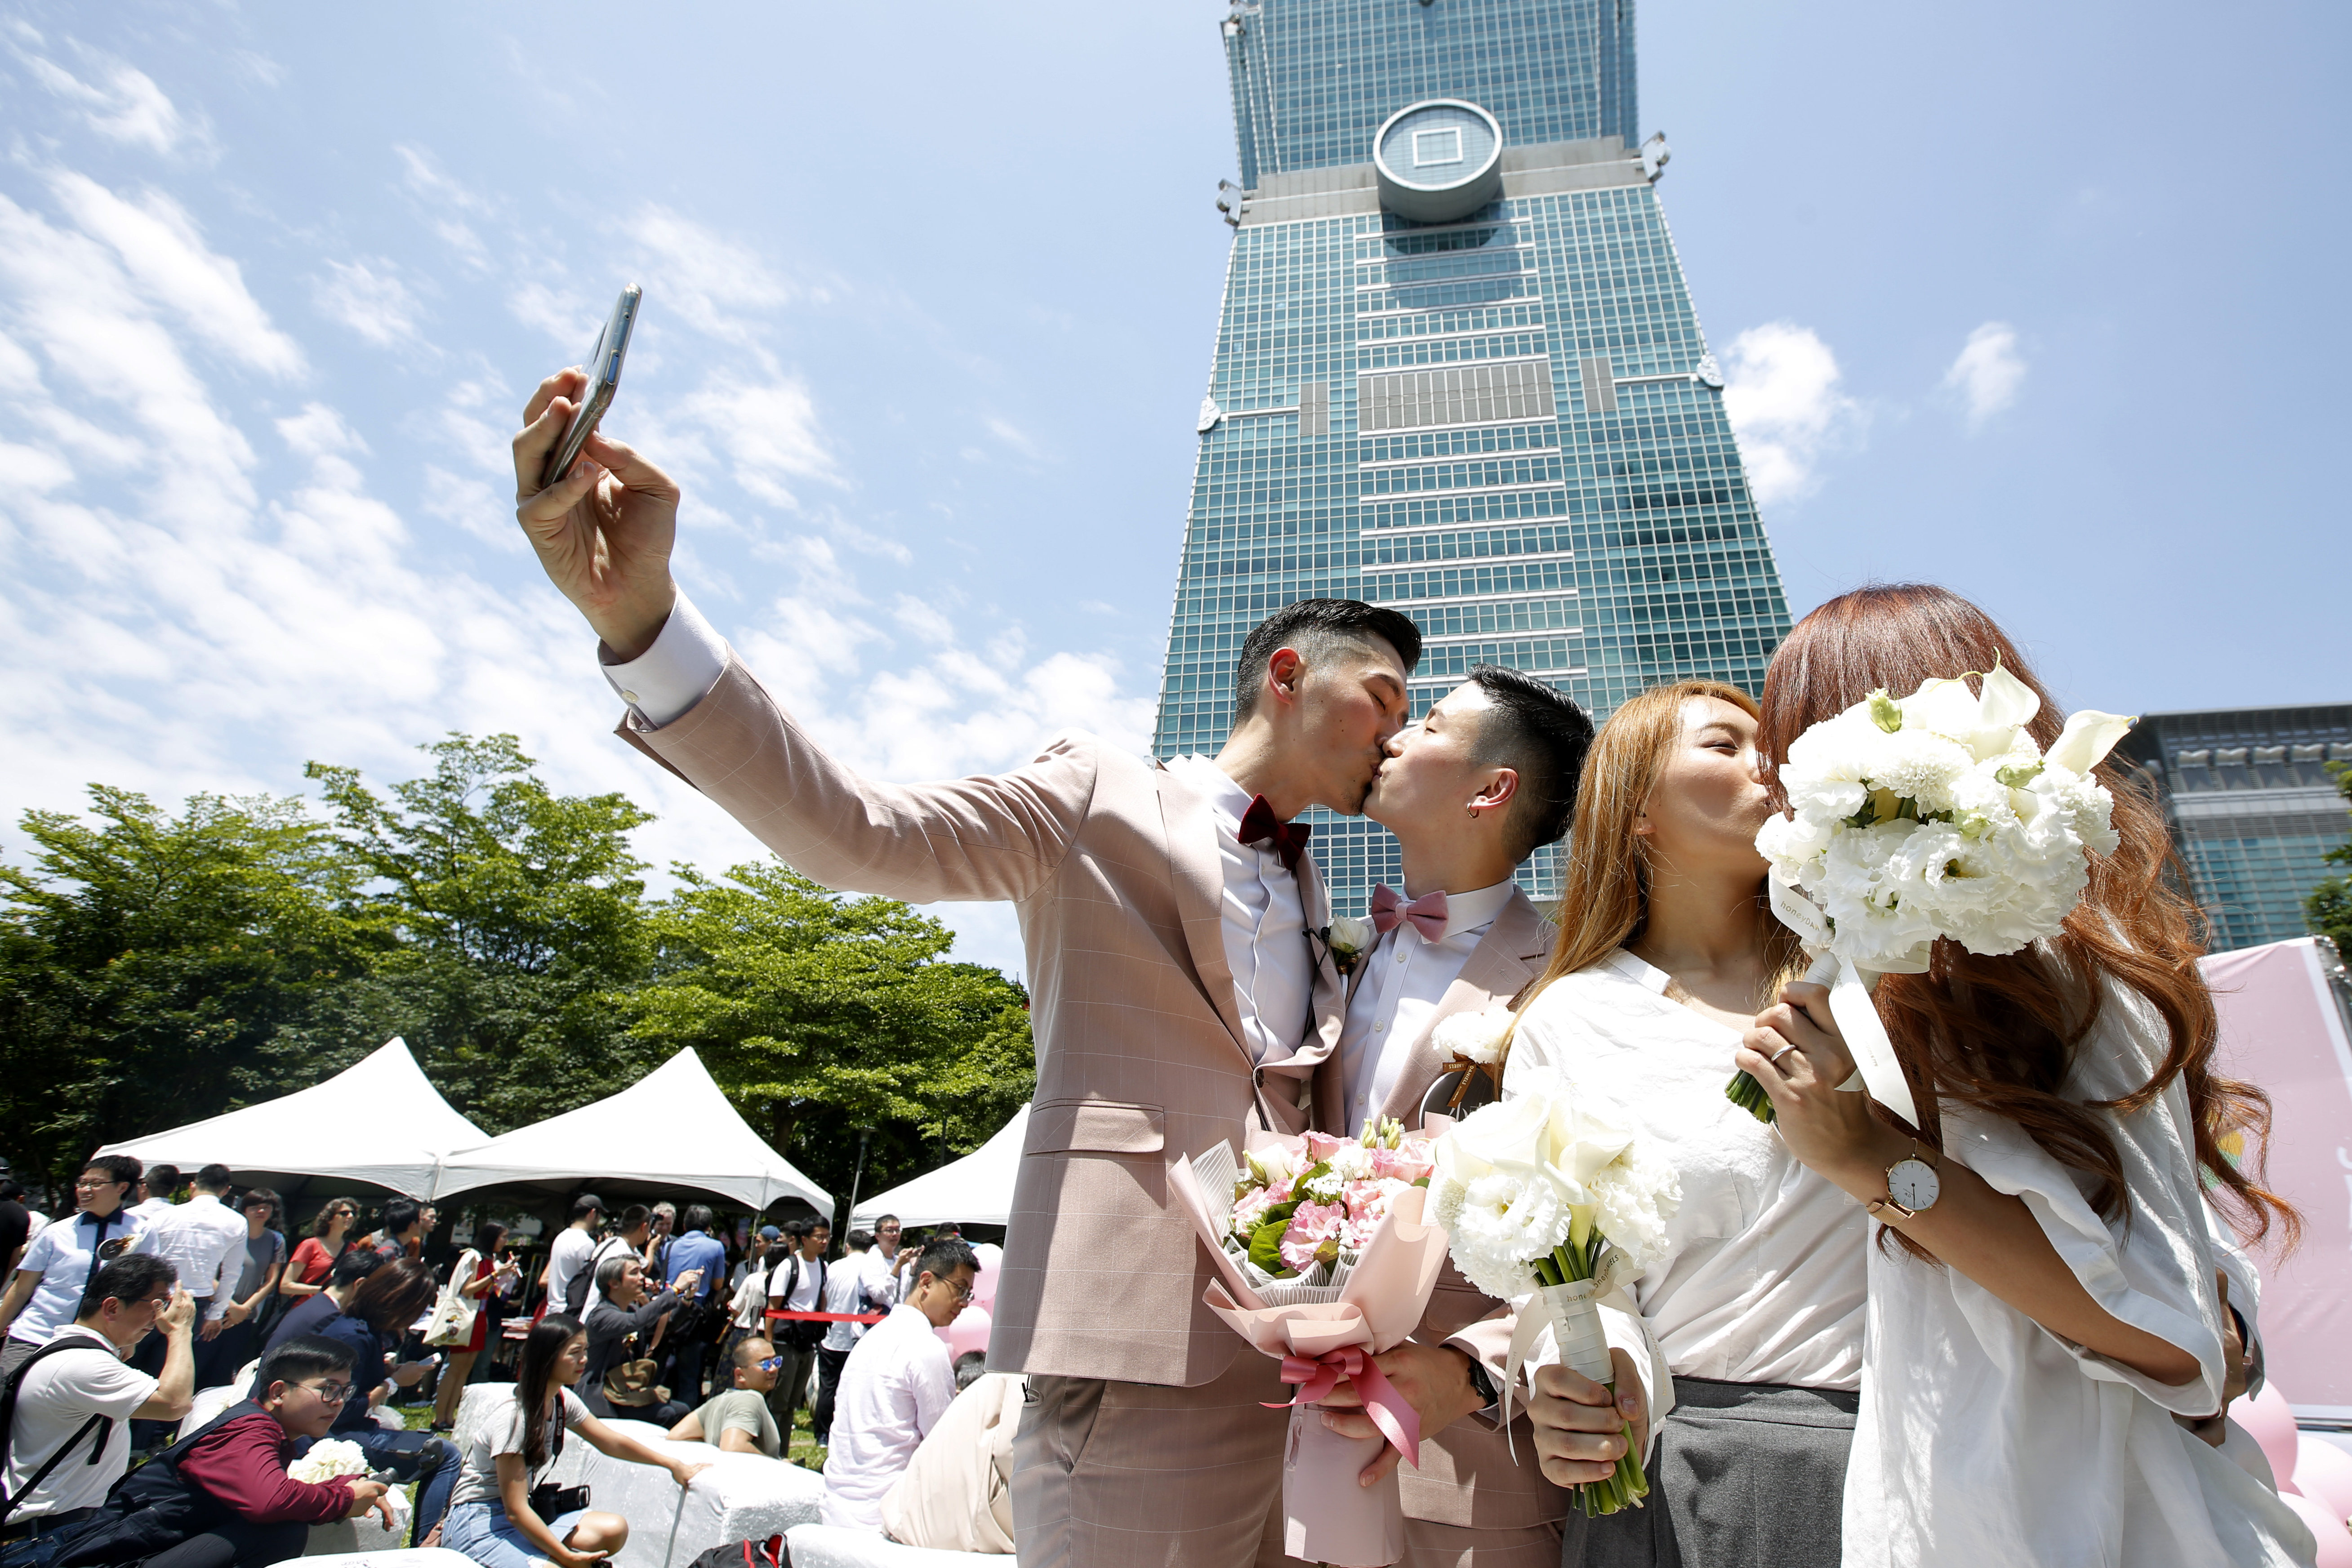 Married couples kiss while posing for photographs in front of the Taipei 101 building.